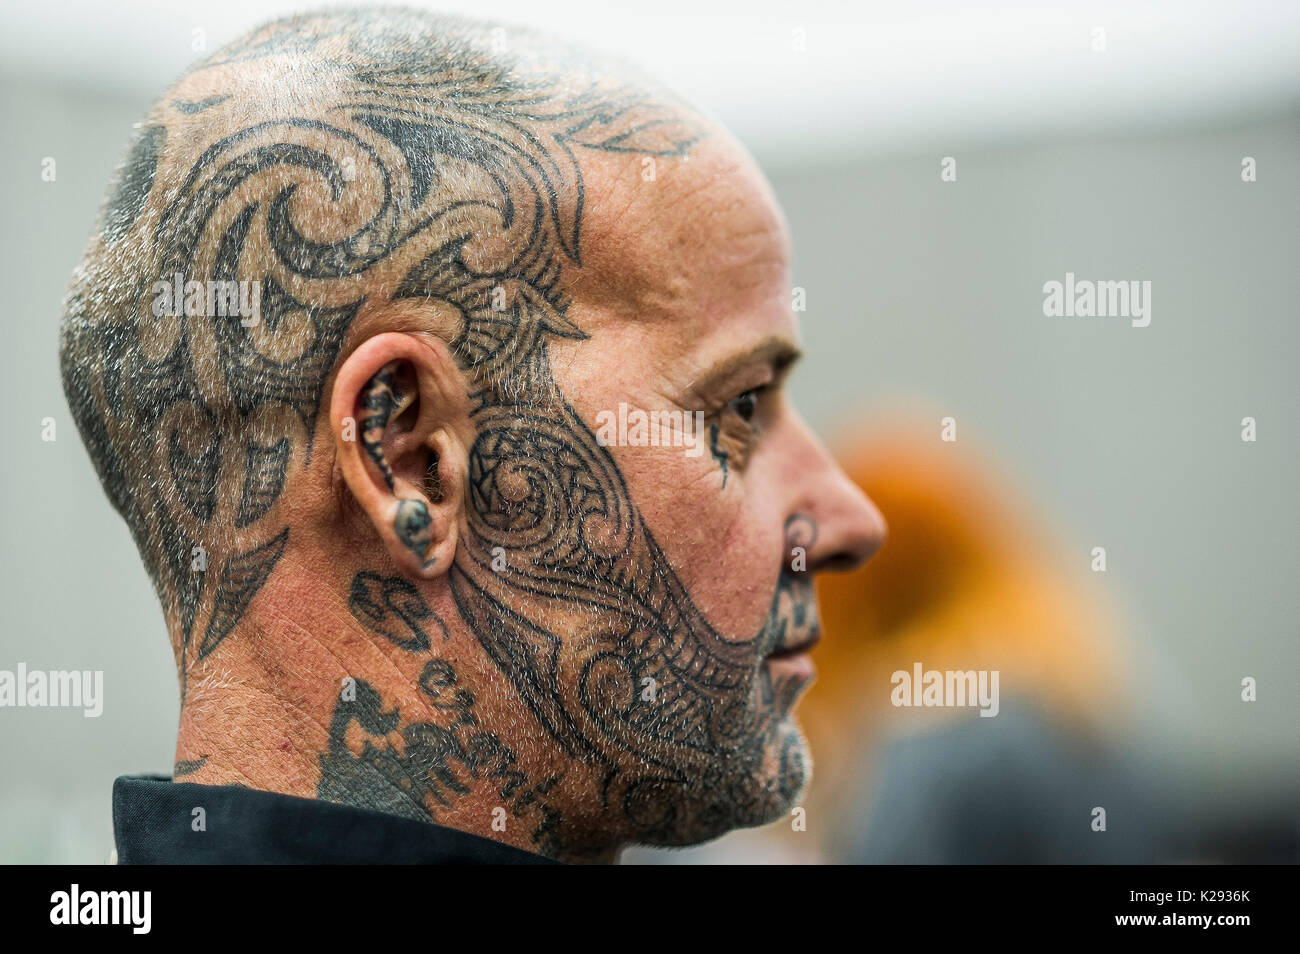 Tattooing. A man with a tattooed face and head at the Cornwall Tattoo Convention. - Stock Image